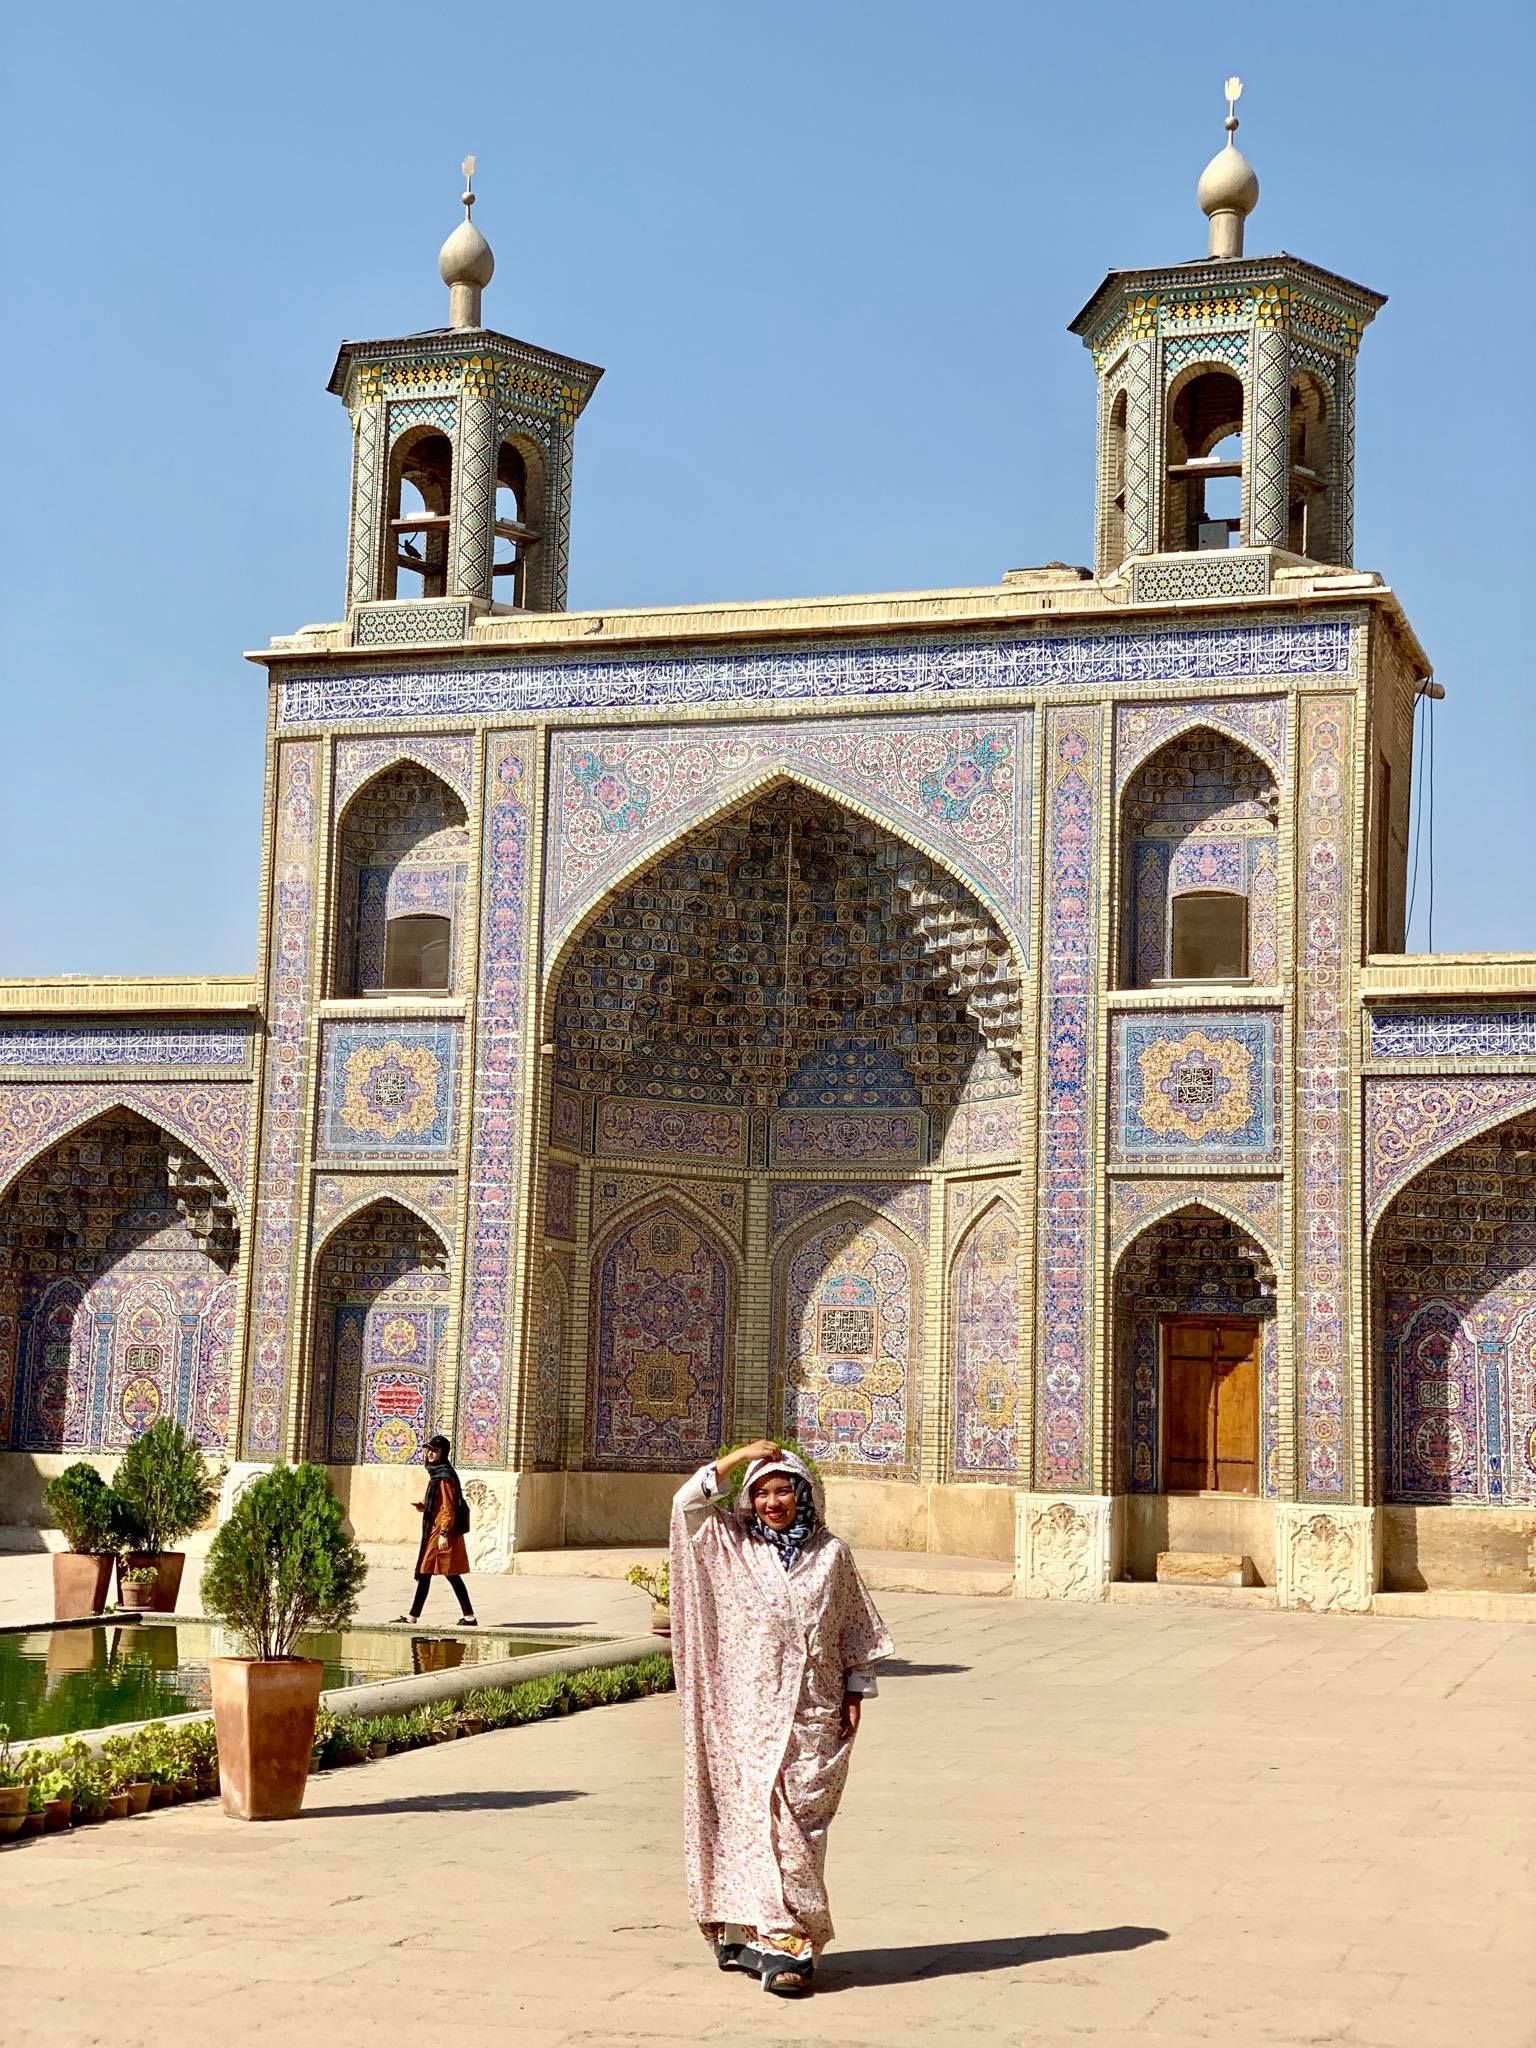 Kach Solo Travels in 2019 Full day tour of Shiraz34.jpg